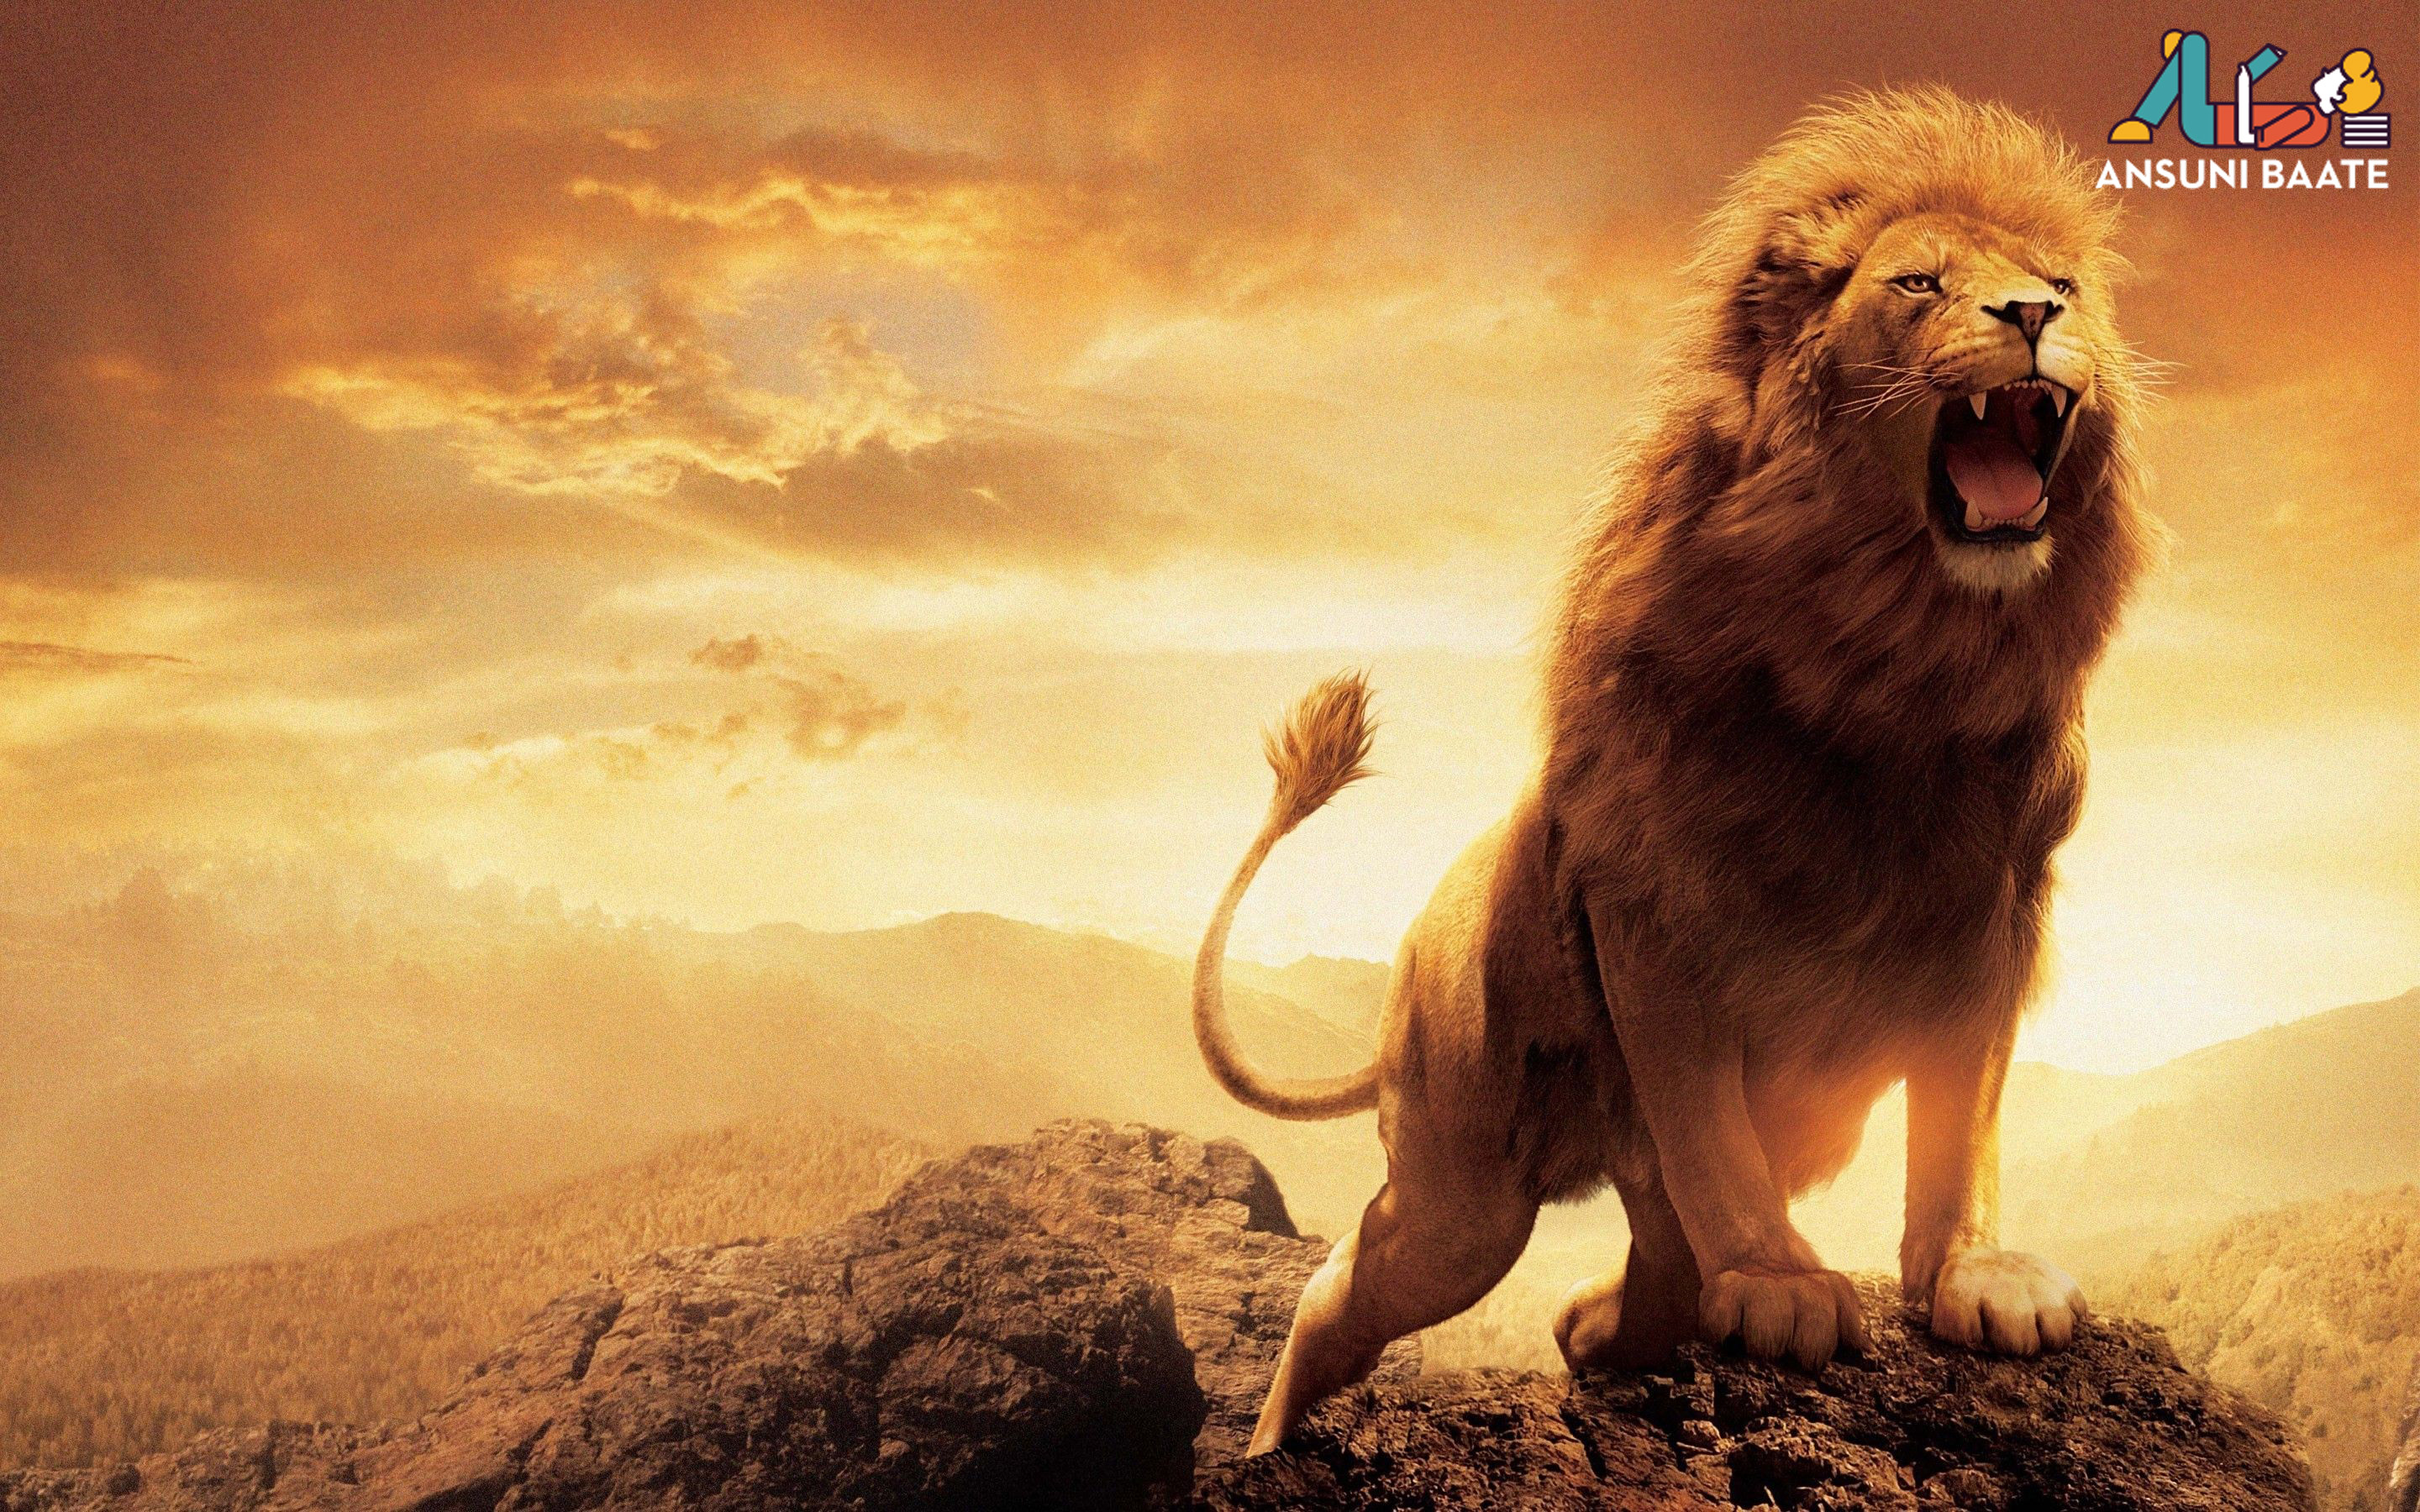 Lion Photos Pictures Image & Hot Pics Gallery Download लायन शेर इमेज